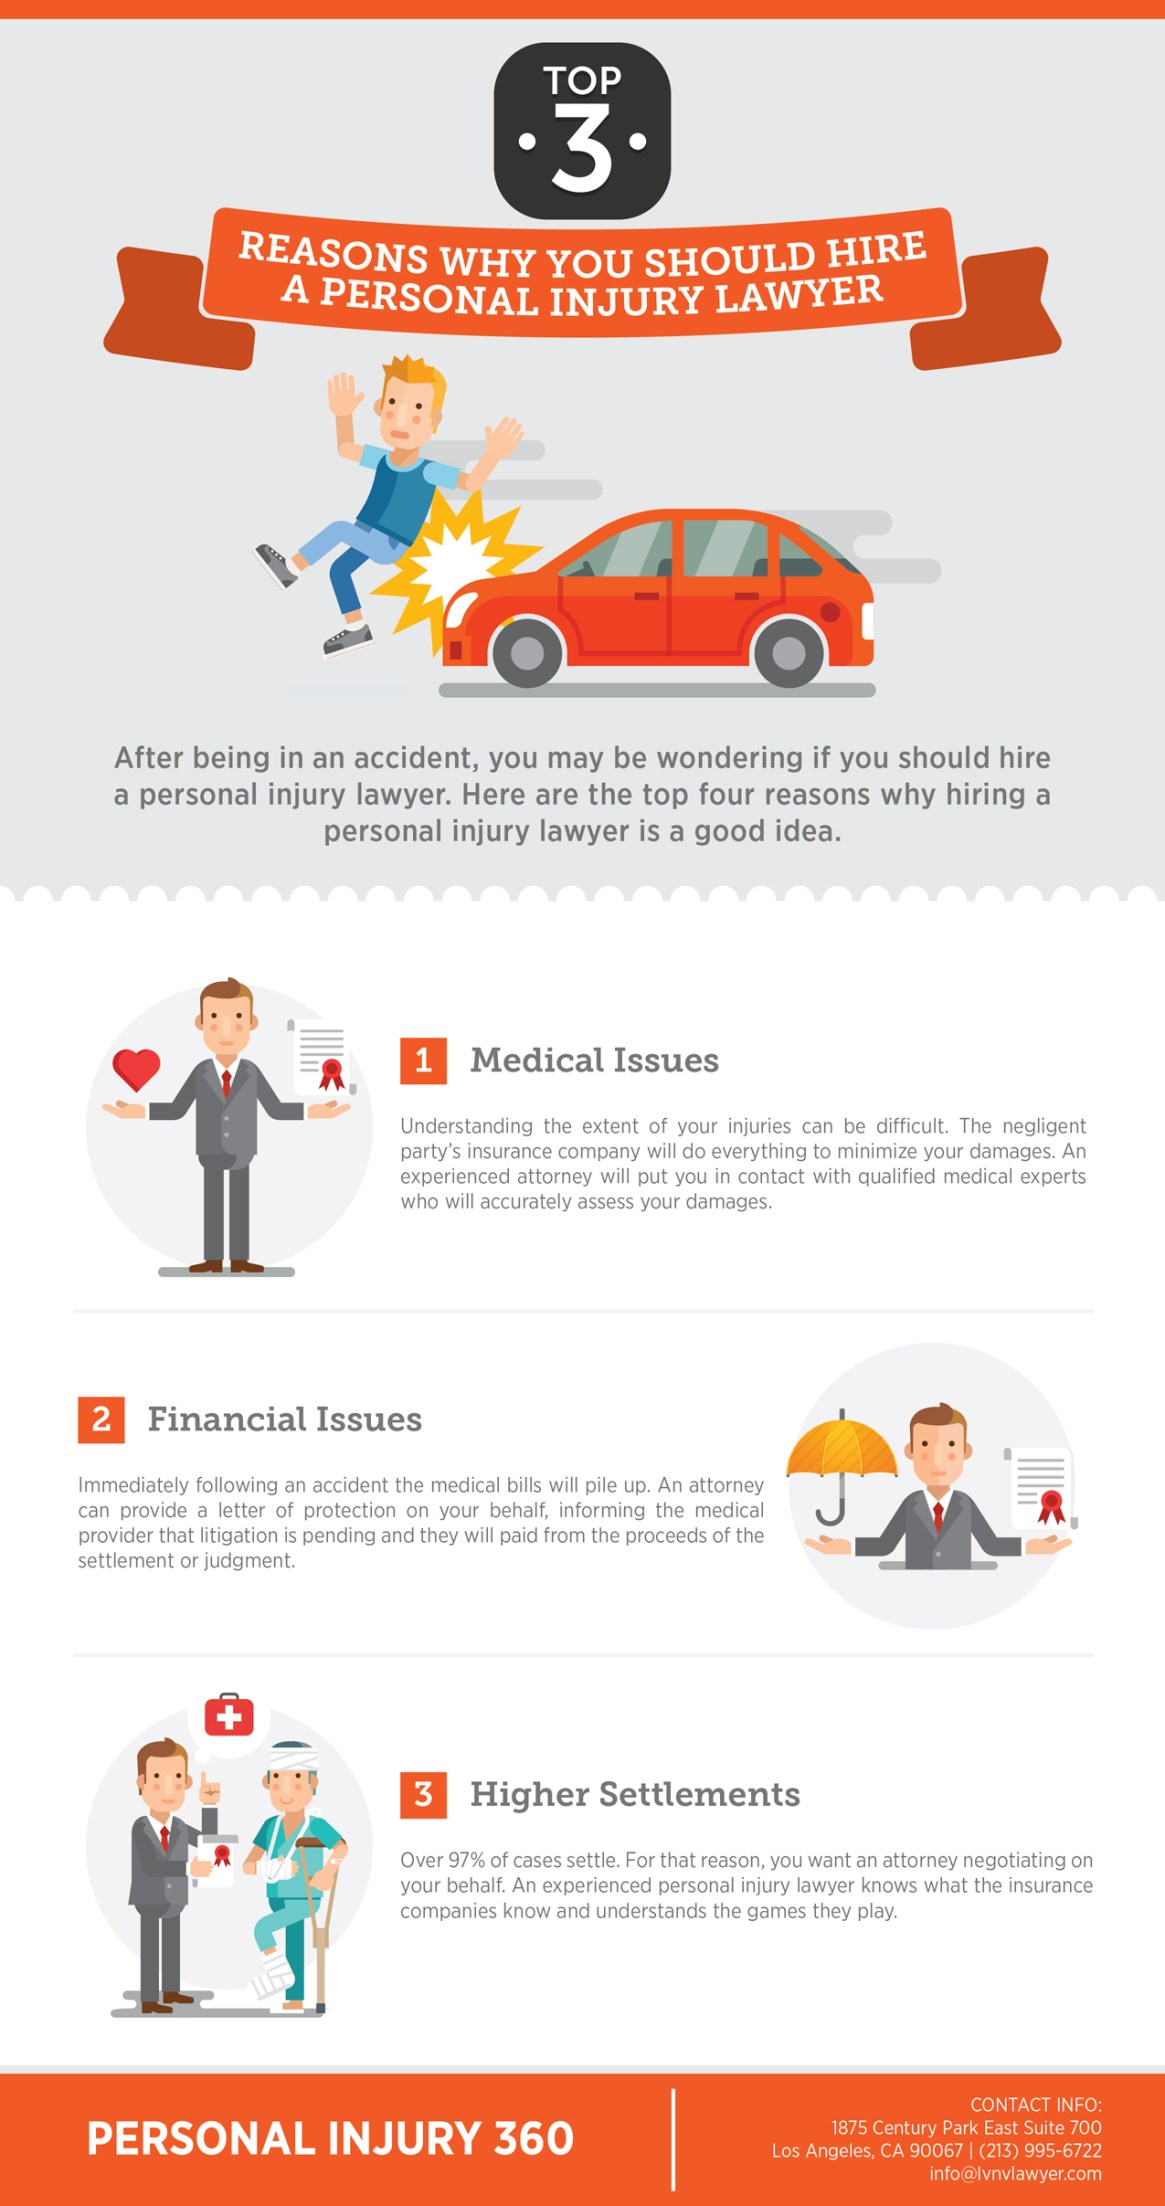 Top 3 Reasons Why You Should Hire a Personal Injury Lawyer